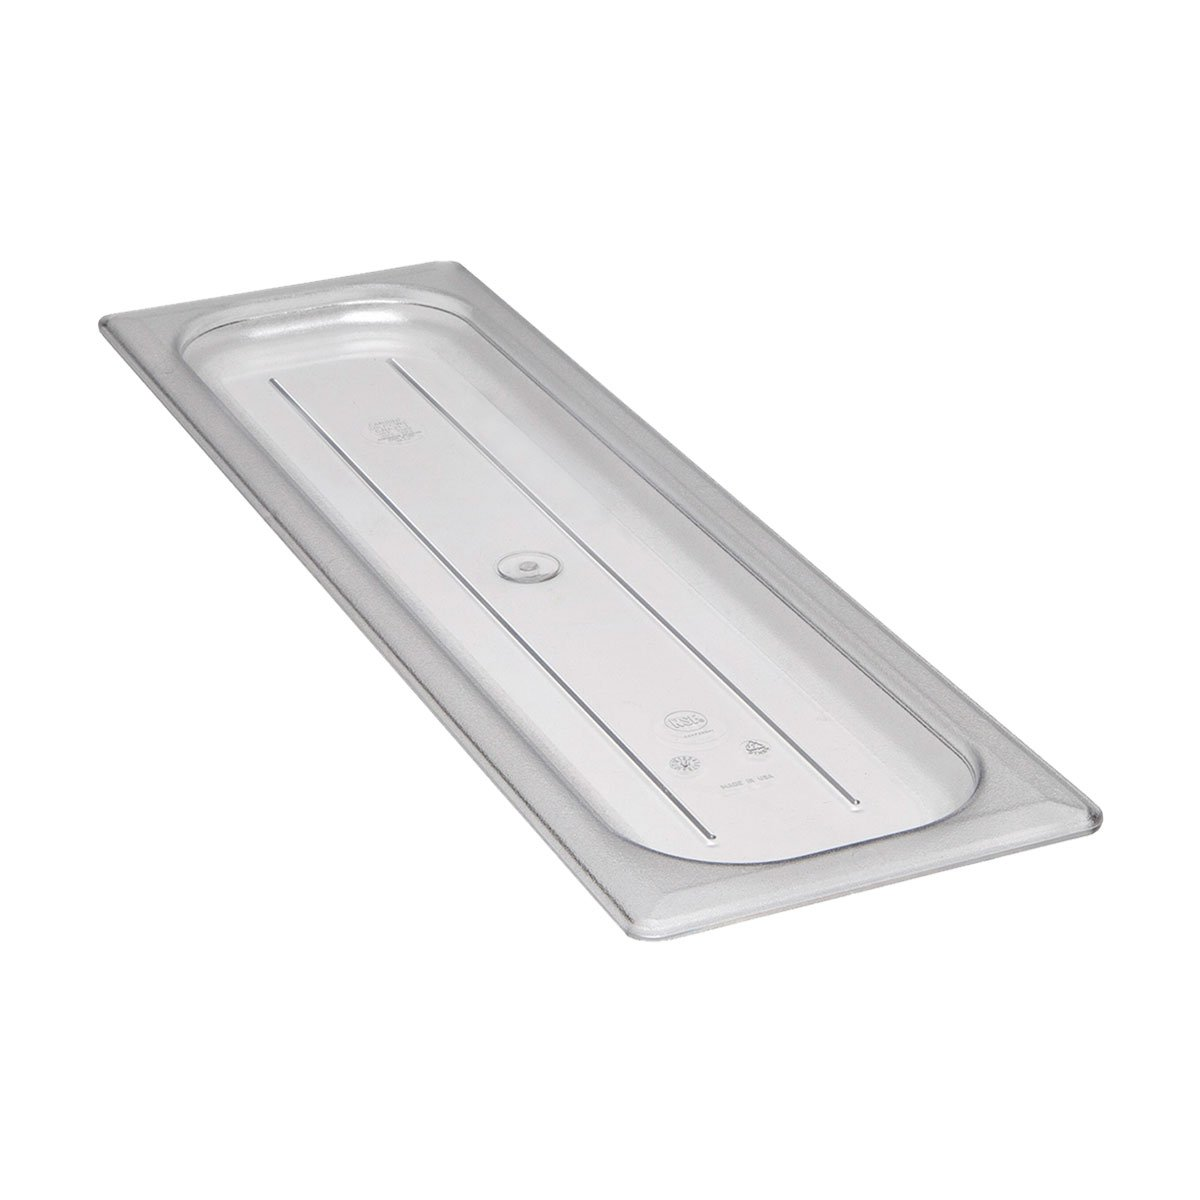 Cambro 20LPCWC135 Camwear Flat Food Pan Lid, Clear, 1/2 Size Long, Case of 6 by Cambro